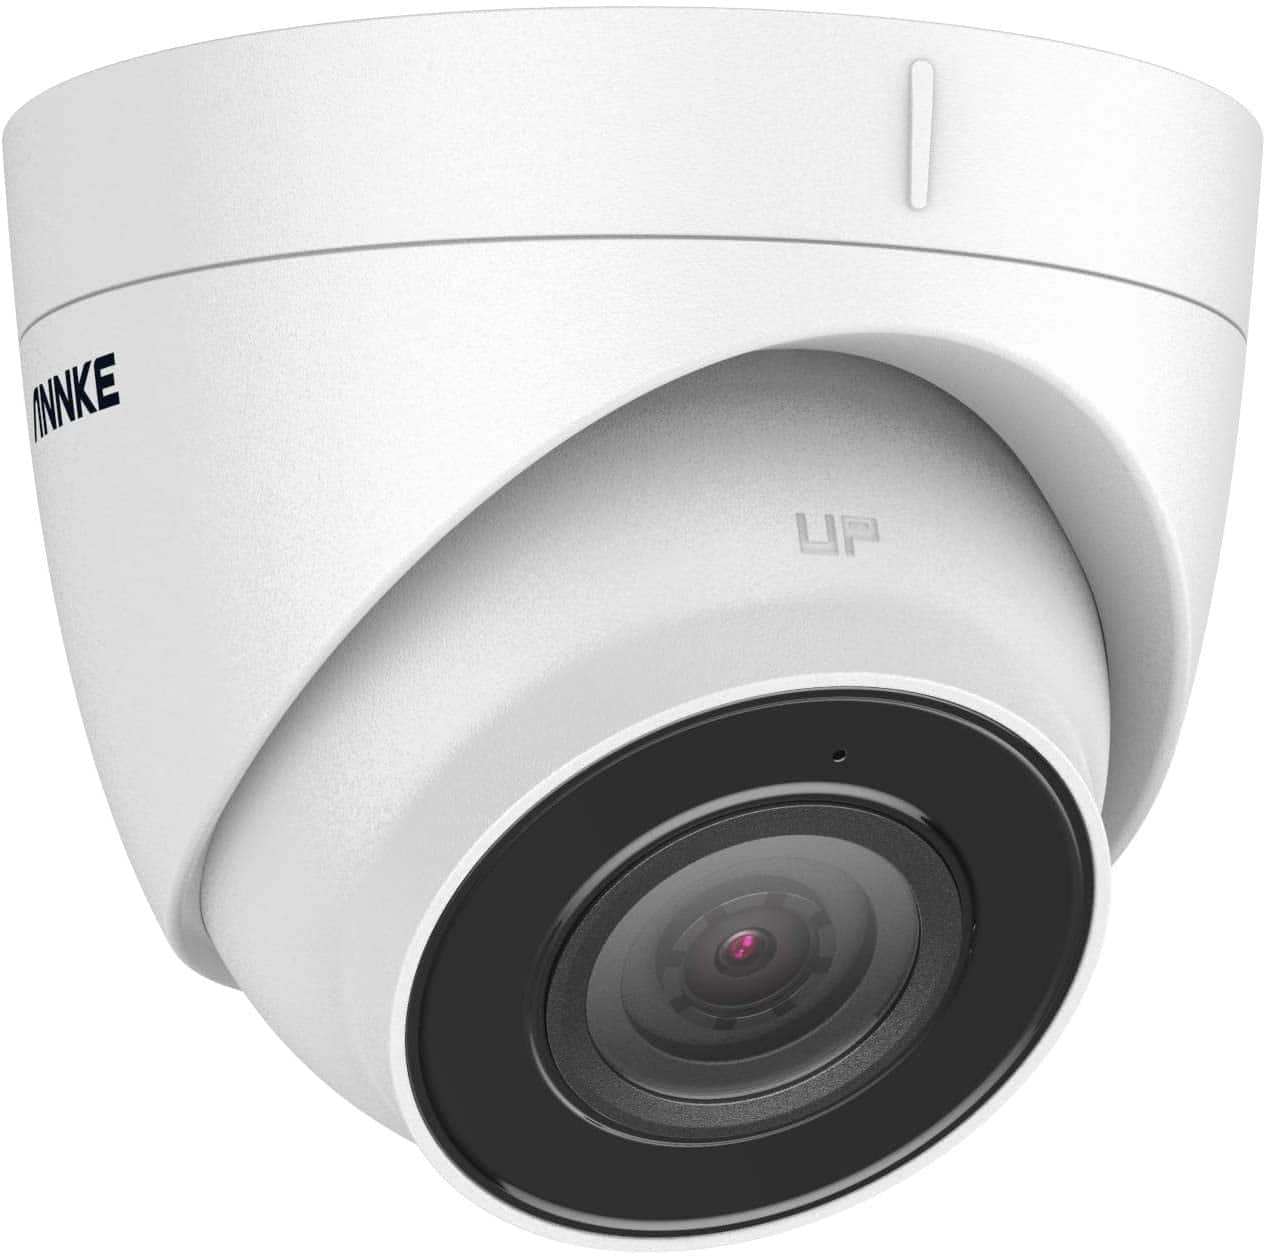 ANNKE C500 5MP Super HD Bullet PoE IP Camera (with Mic Version) $43 & More + Free Shipping